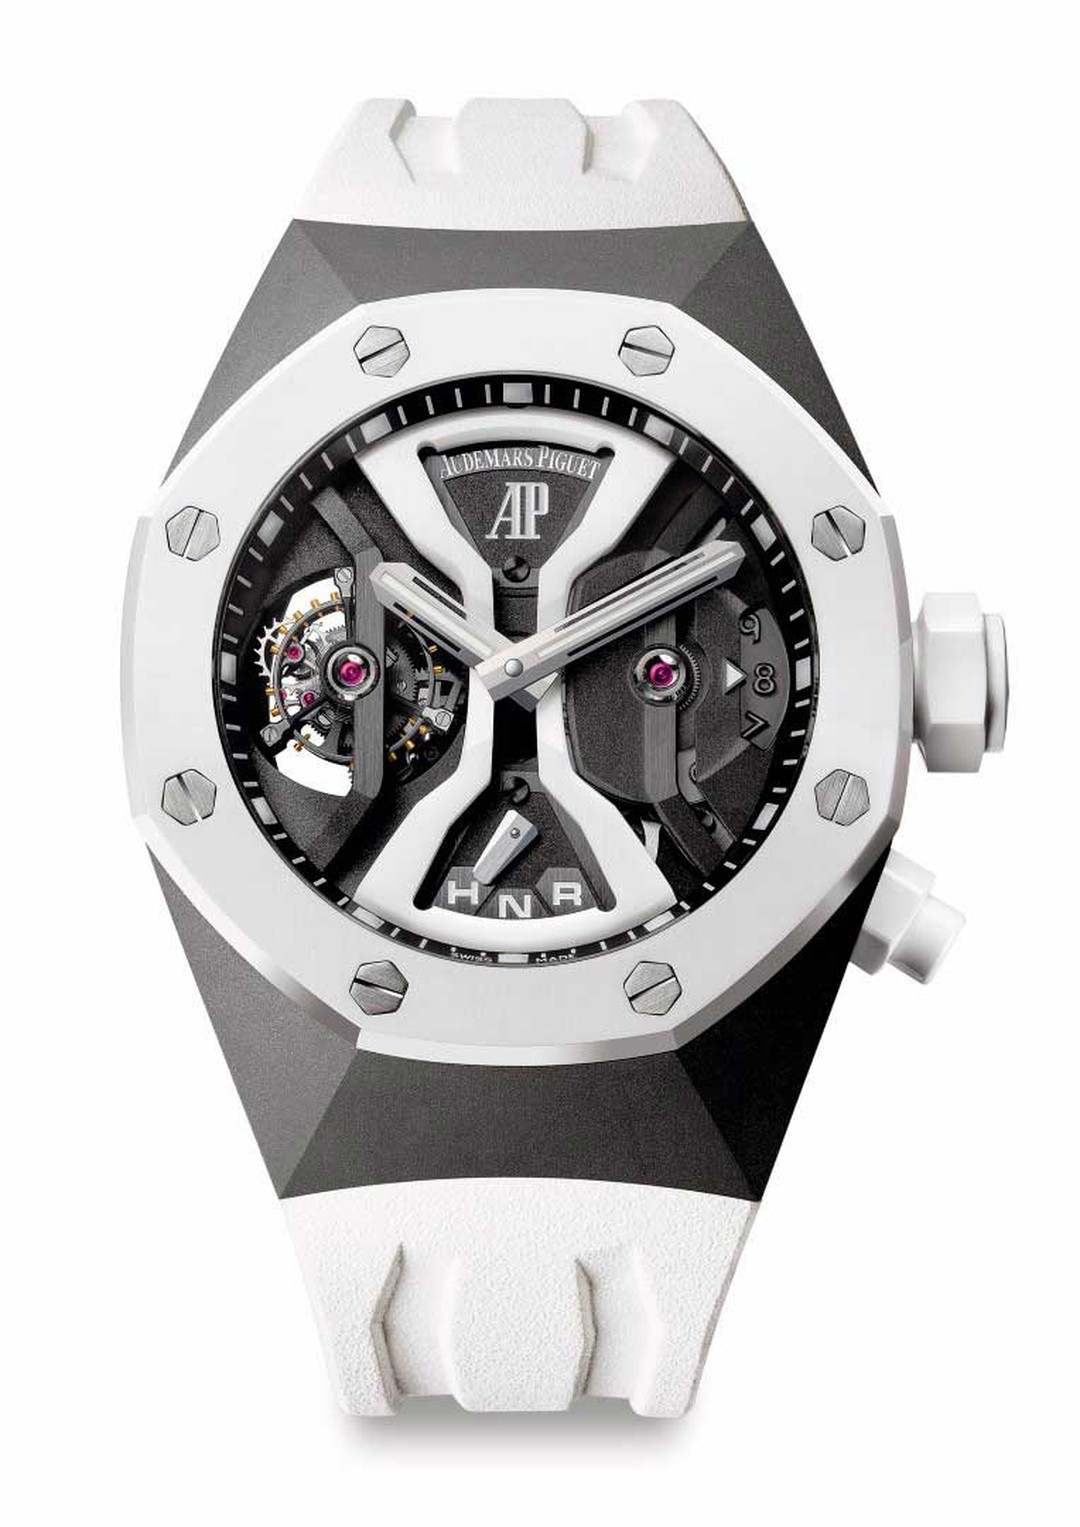 The Audemars Piguet Royal Oak Concept GMT Tourbillon, one of the watches on show at the SIAR watch show in Madrid.